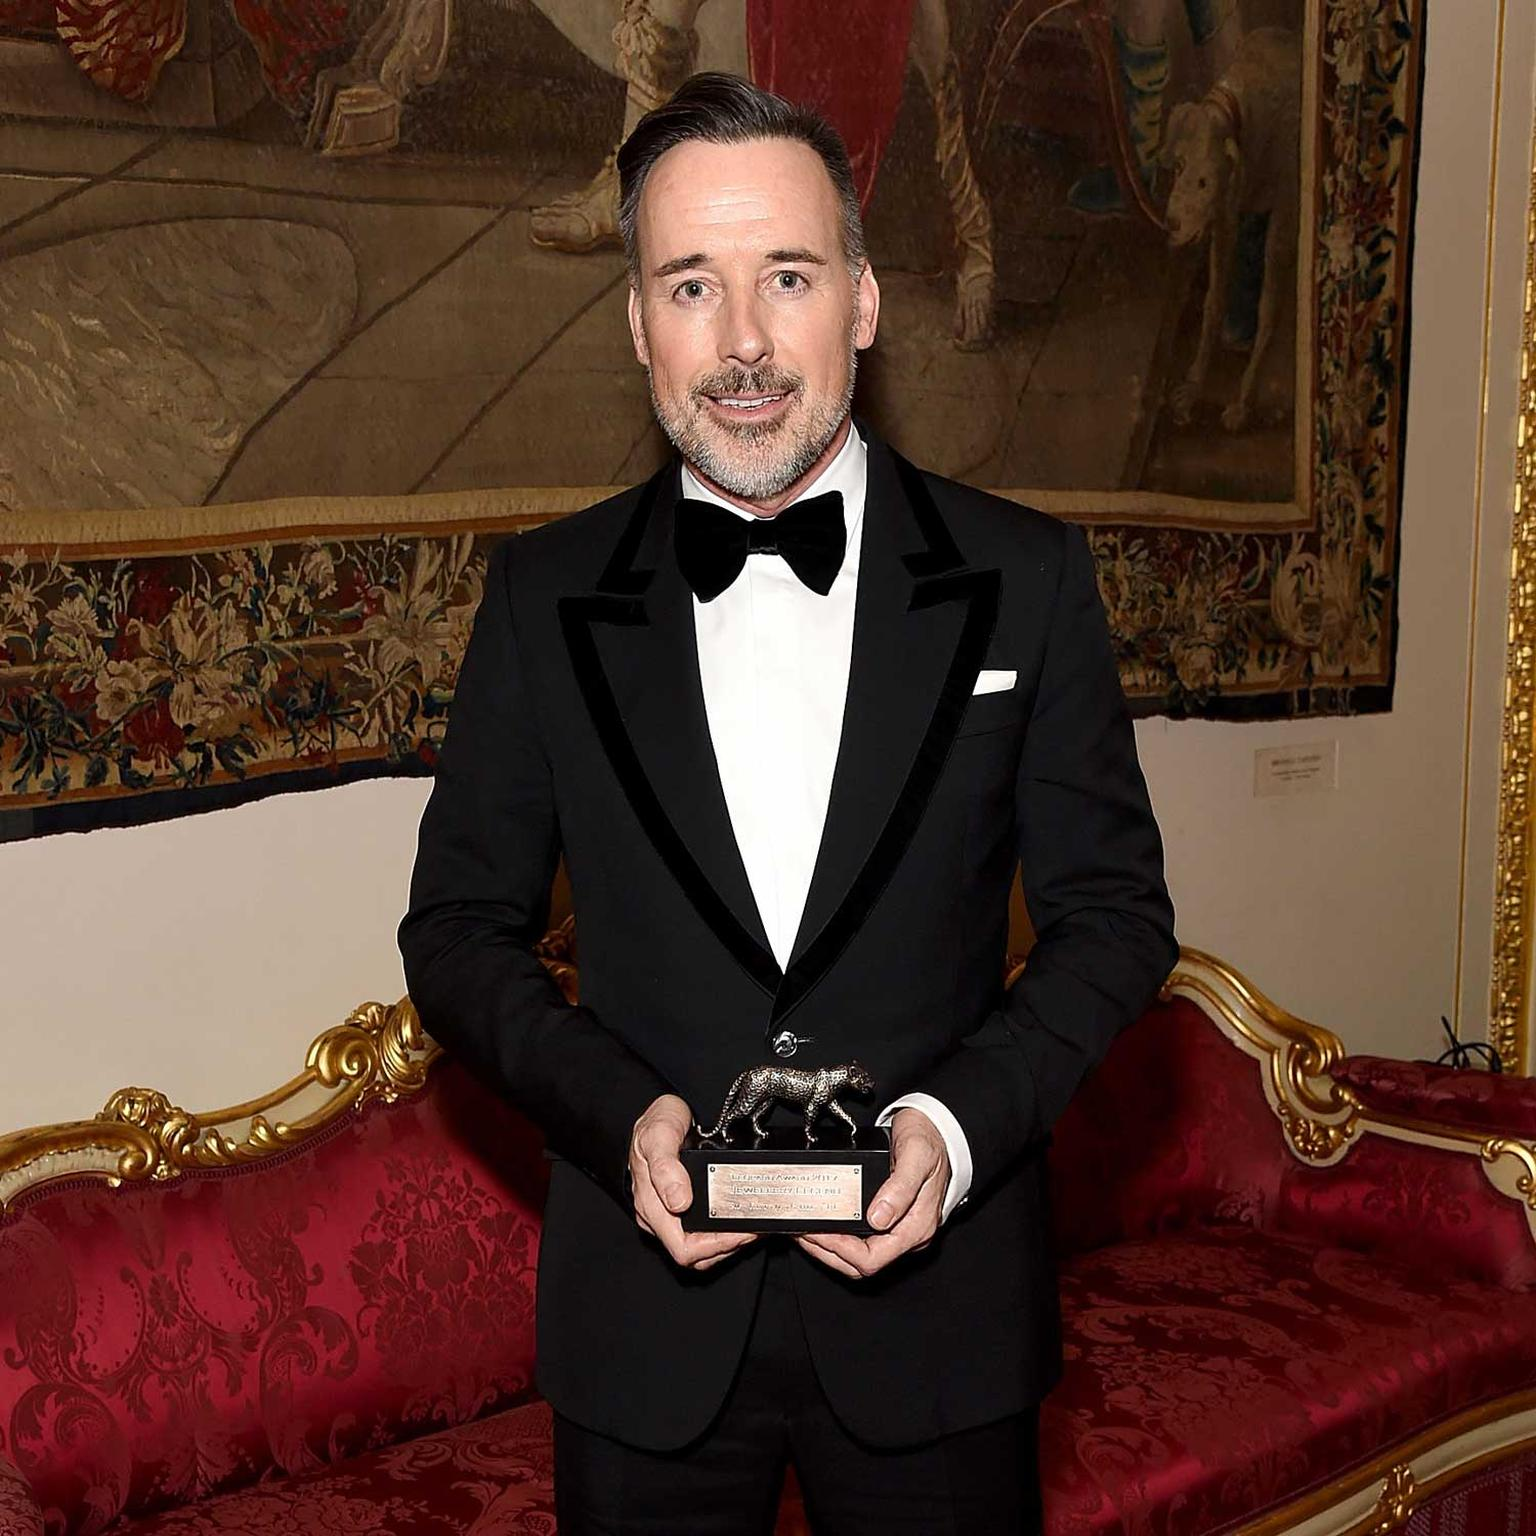 Leopard Legend Award accepted by David Furnish on behalf of Elton John